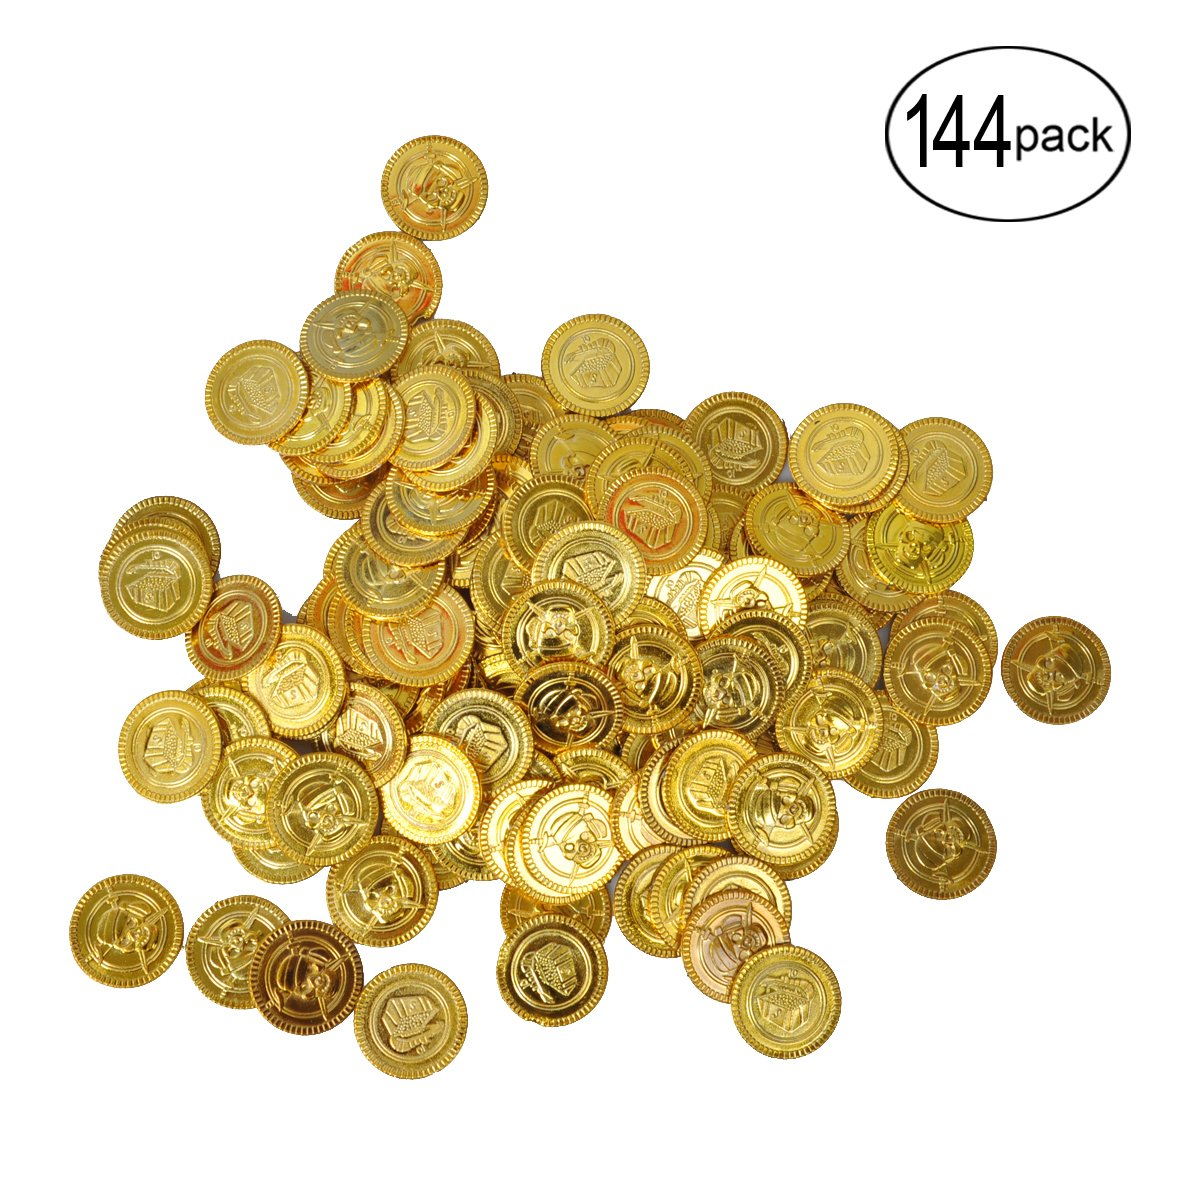 144 Pieces BUYDEAL Pirate Coins Pirate Party Favor Plastic Gold Coins